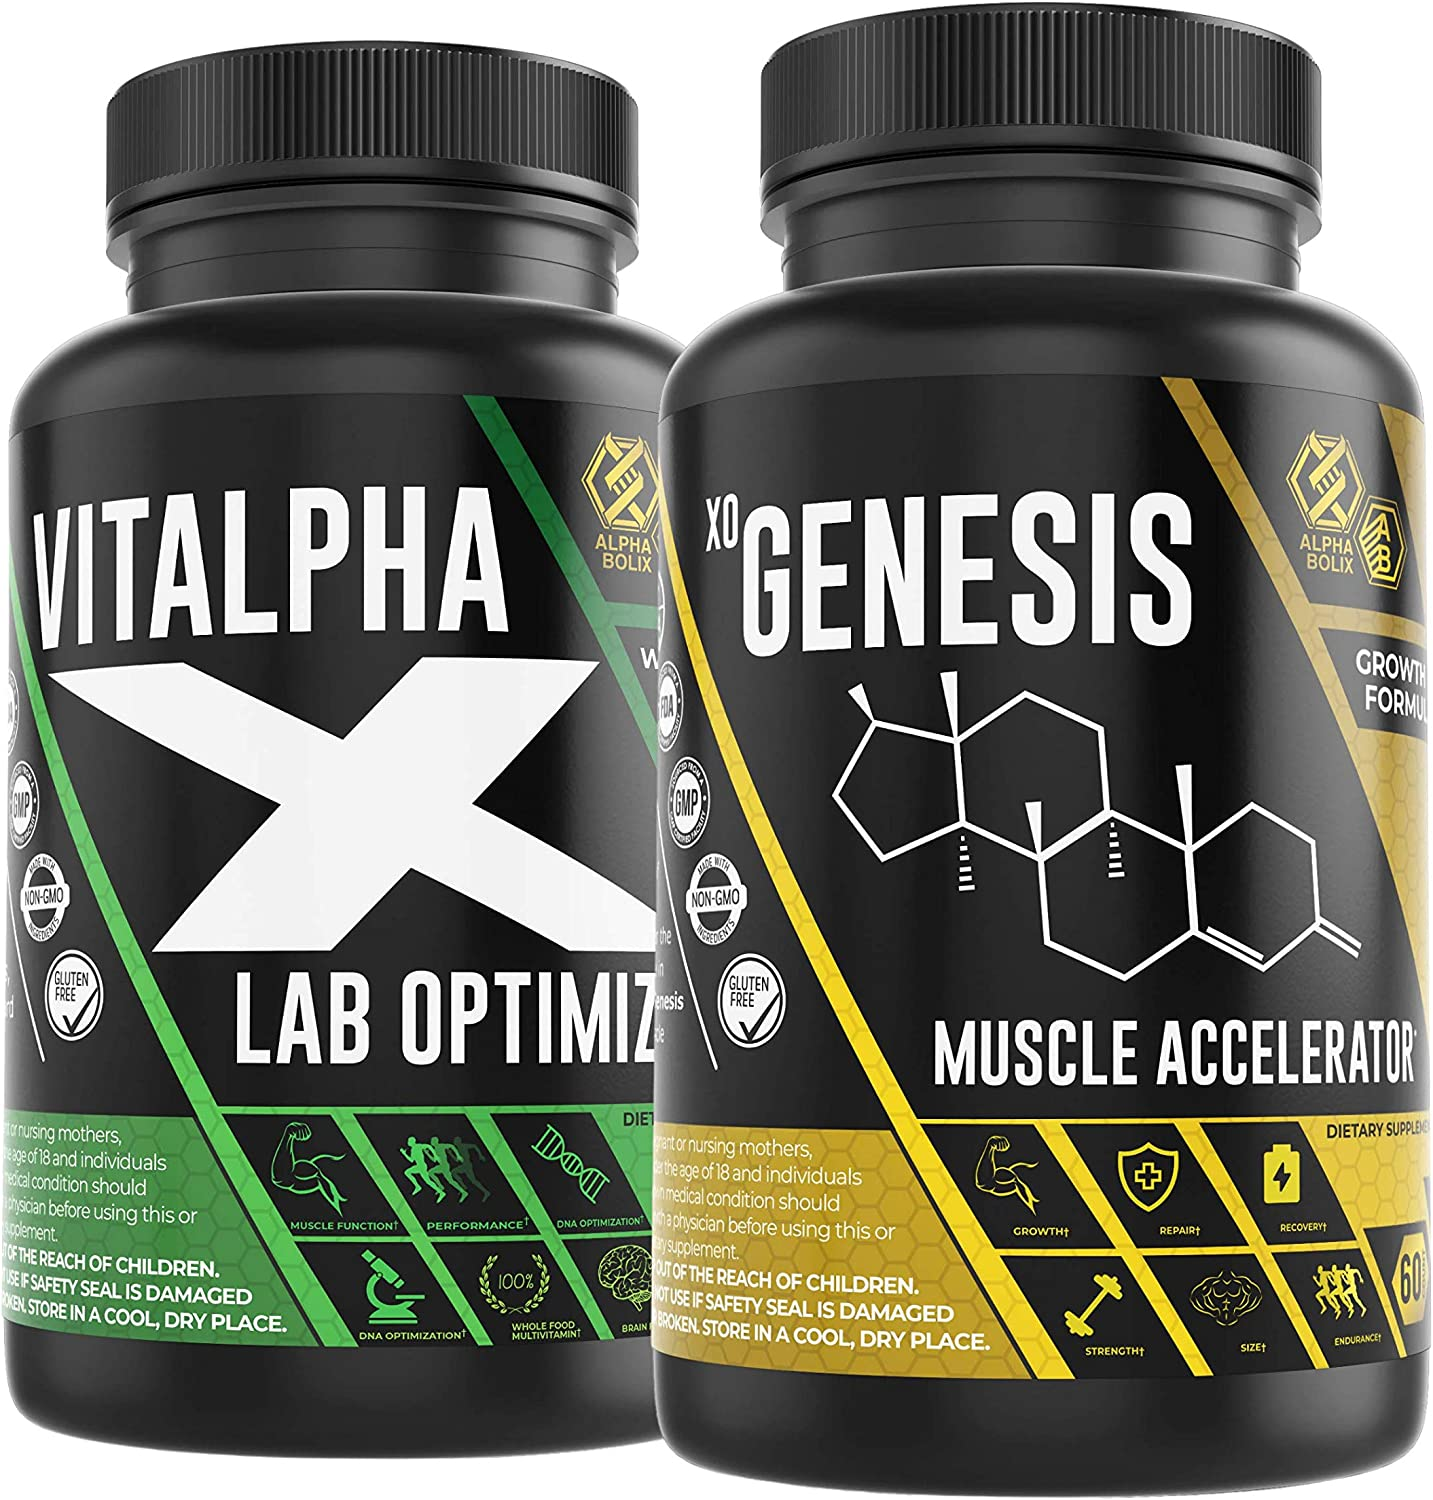 Whole Food Mens Multivitamin - Vitamins, Minerals, Vegetables and Fruits Plus Advanced Muscle Builder - Formulated with AAKG, L-Phenylaline, Citrulline Malate and L-Arginine